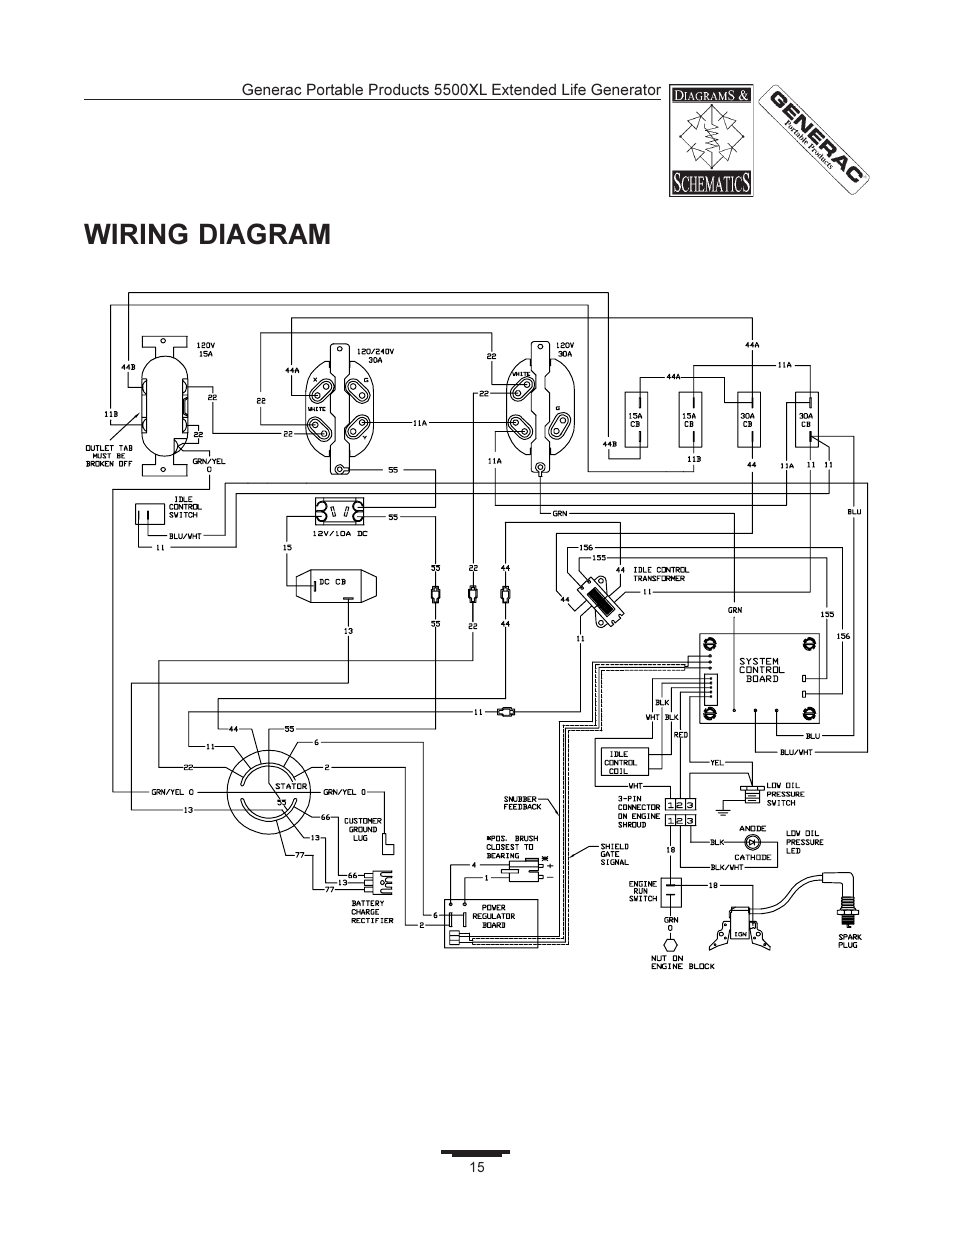 Need Wiring Diagram For Generac Gp7000e Portable Generator